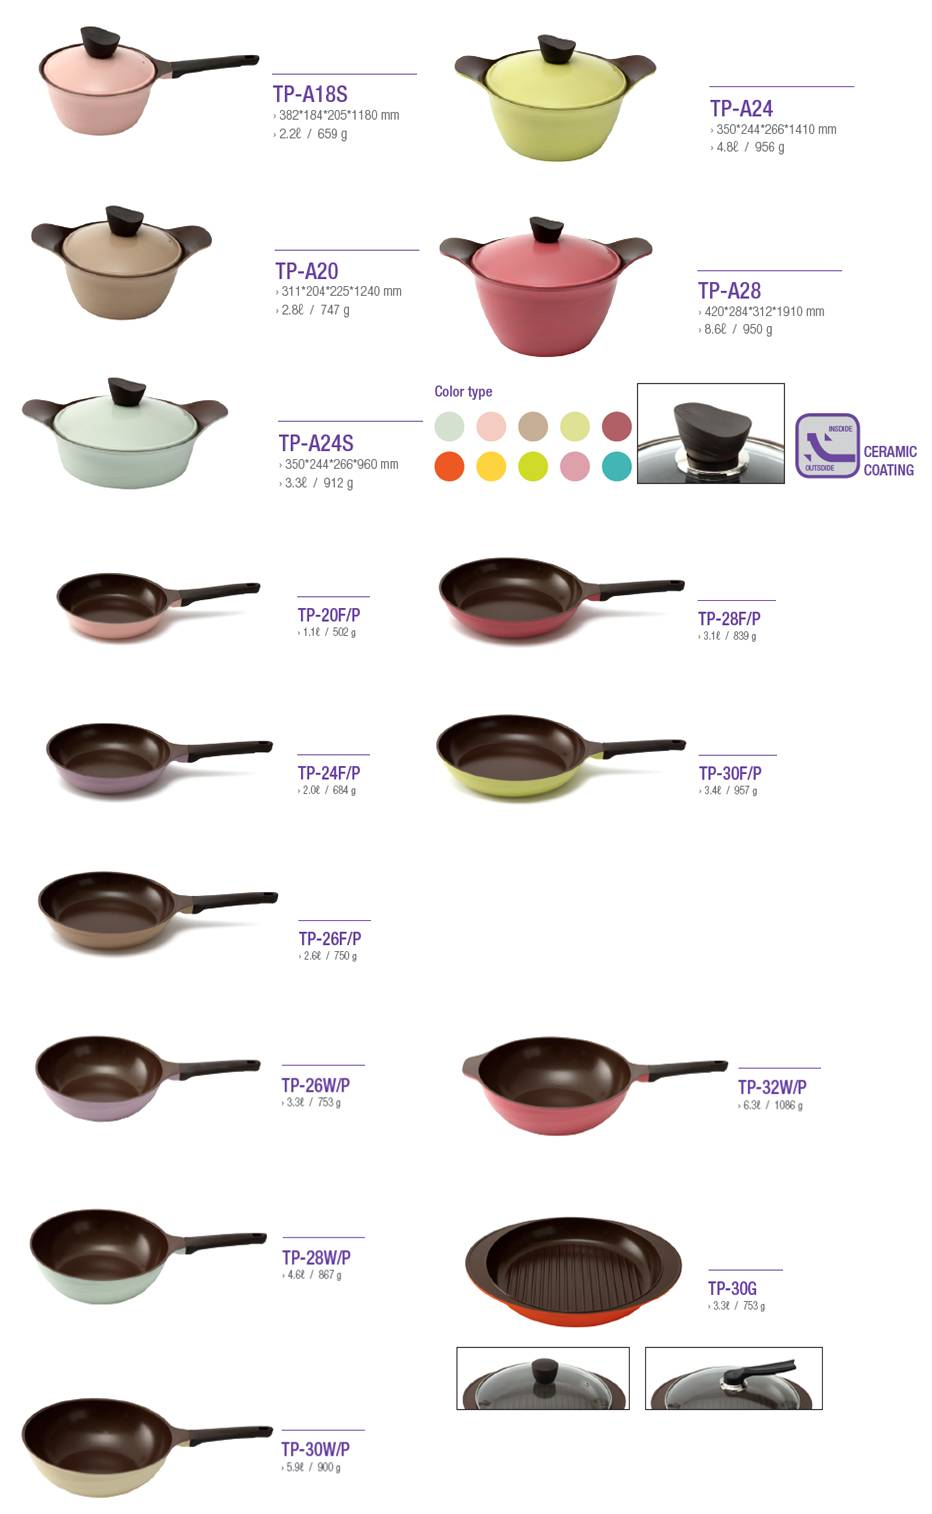 Die Casting Aluminum and Non Stick Ceramic Coating Cookware Set in South Korea